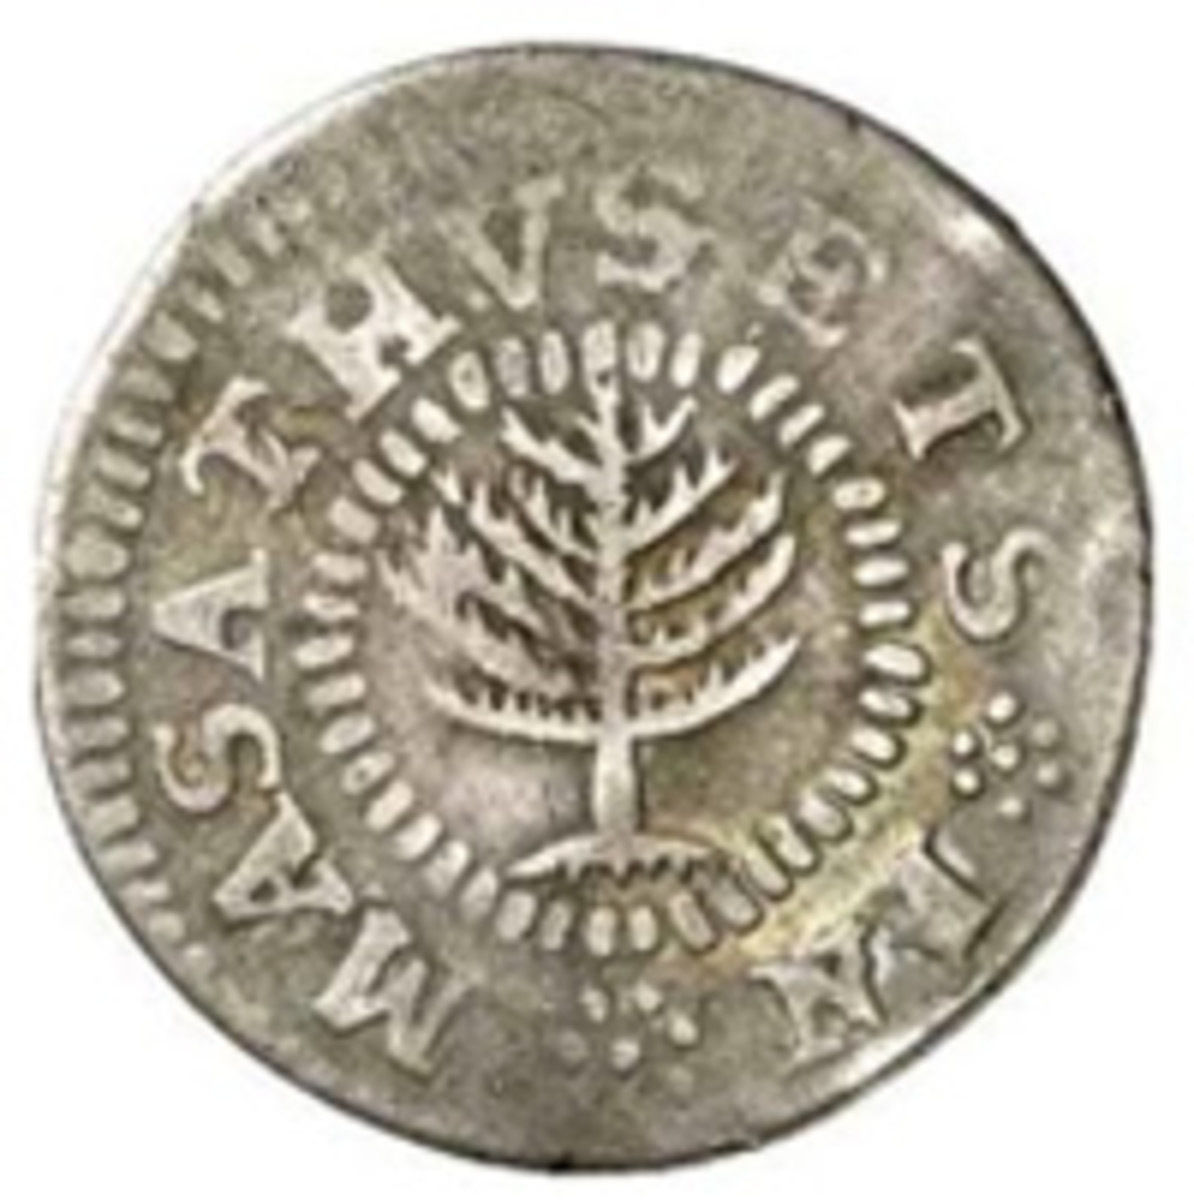 An example of the Massachusetts Pine Tree shilling.